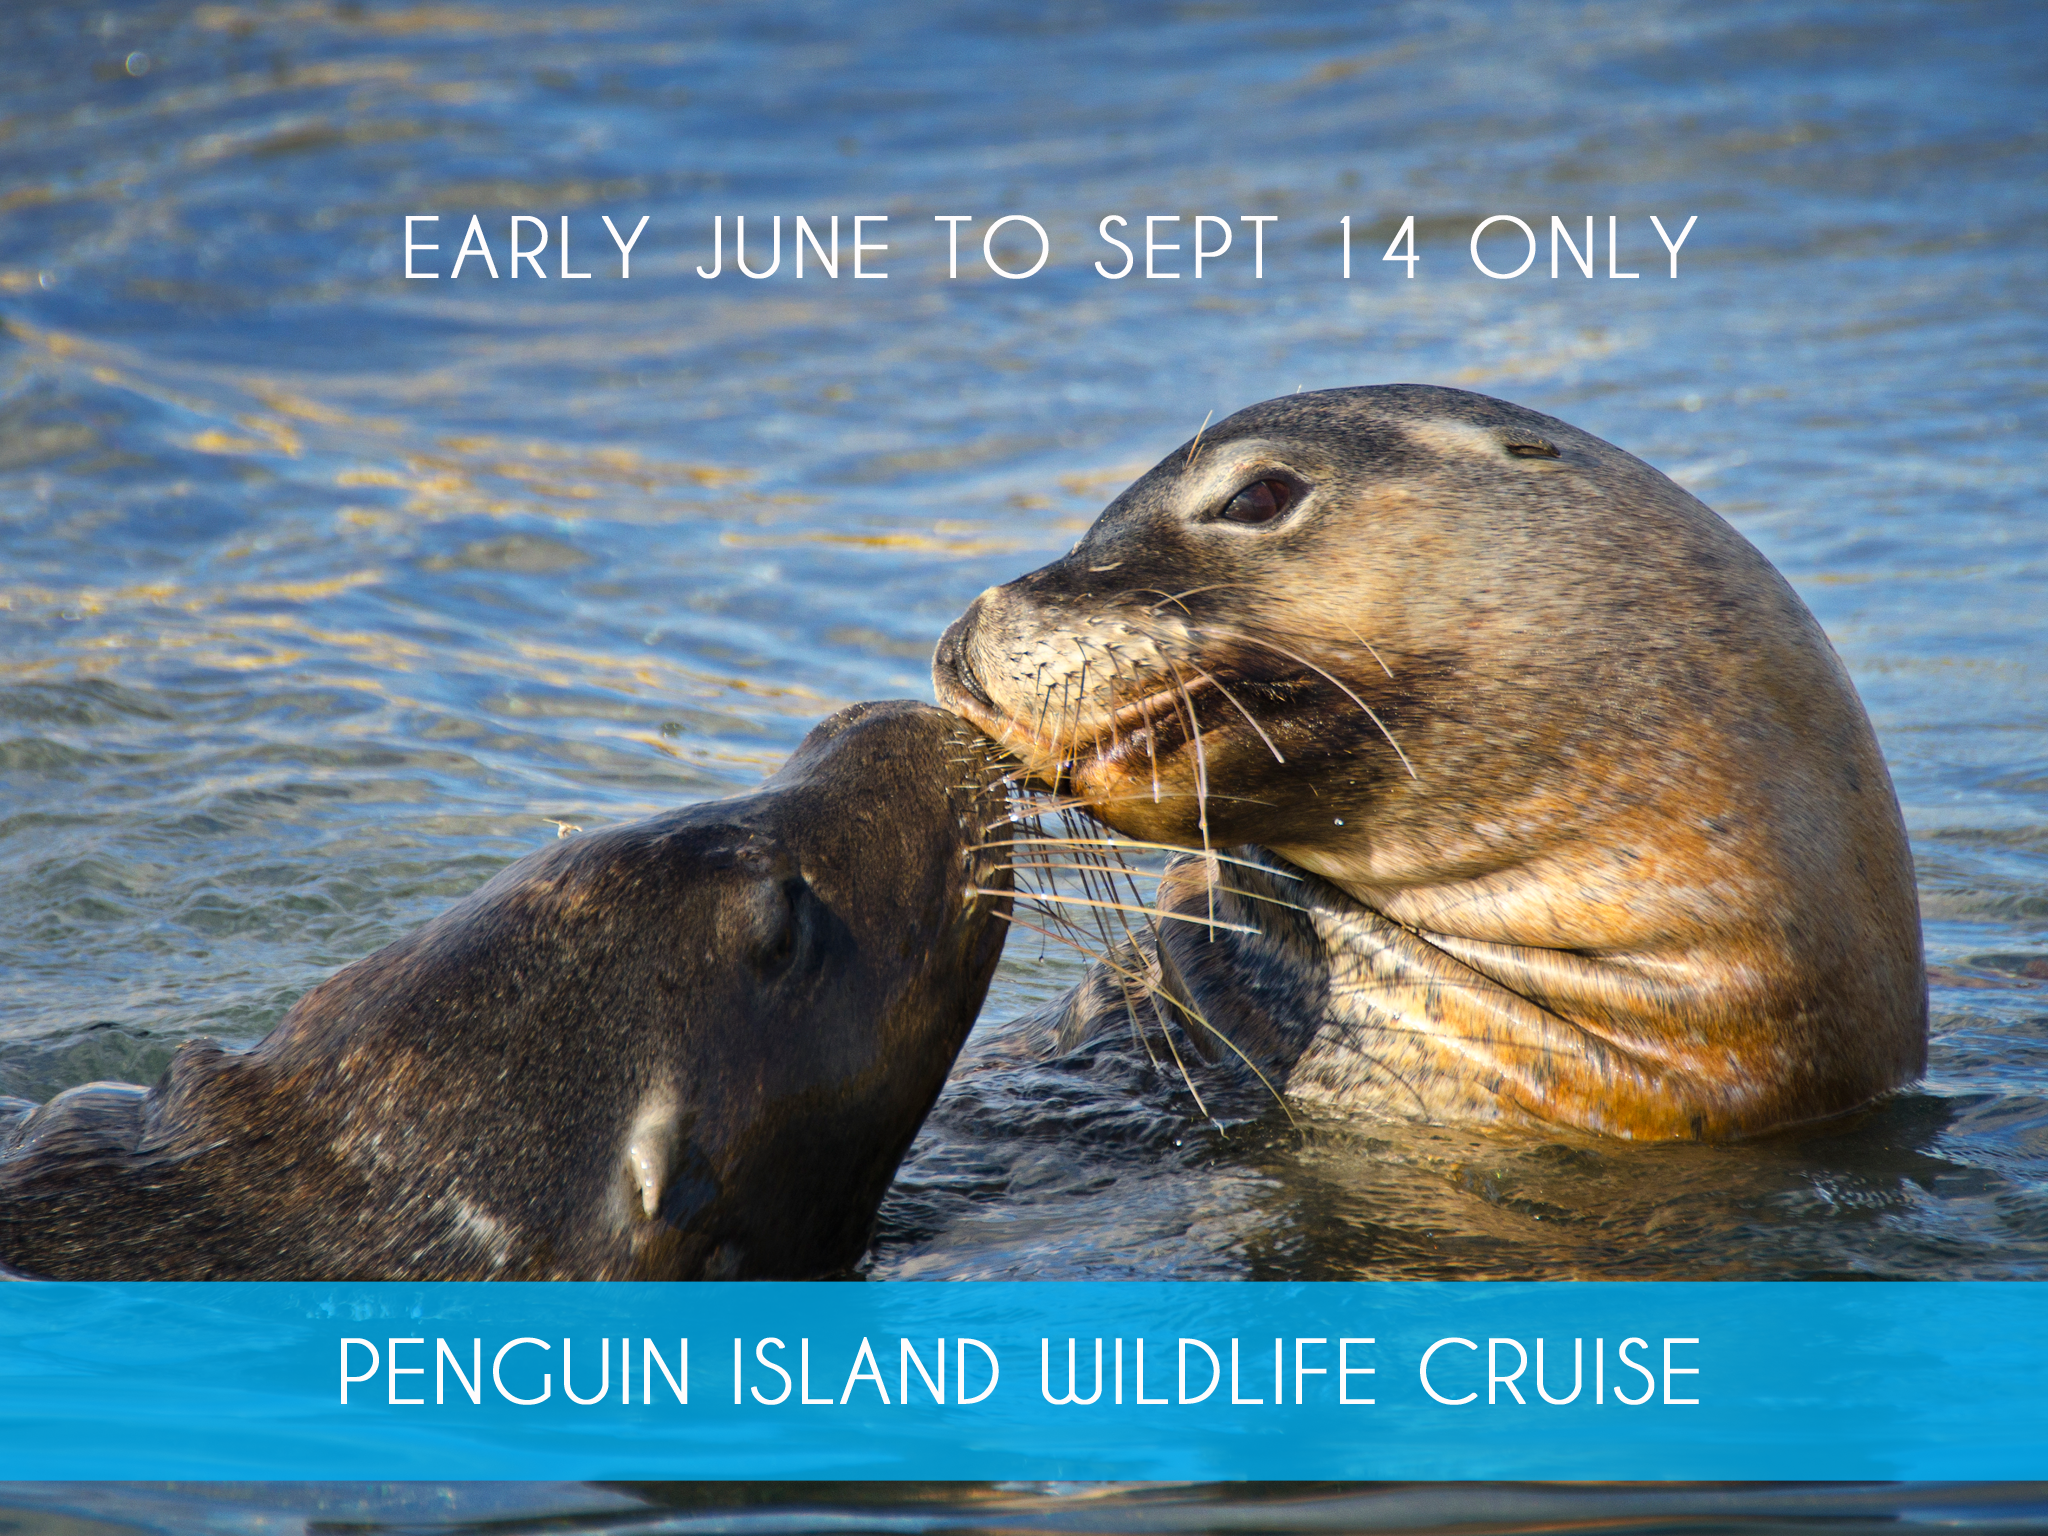 penguin island Wildlife Cruise  Winter time is penguin nesting season! Enjoy the scenic highlights of the Shoalwater Islands Marine Park and keep a look out for the local wildlife! This 60 minute glass bottom boat cruise takes in the ruggedly spectacular coastlines of Penguin, Seal & Bird Islands and a 30 minuted guided walk on Penguin Island.   Adults from $39   MORE INFO